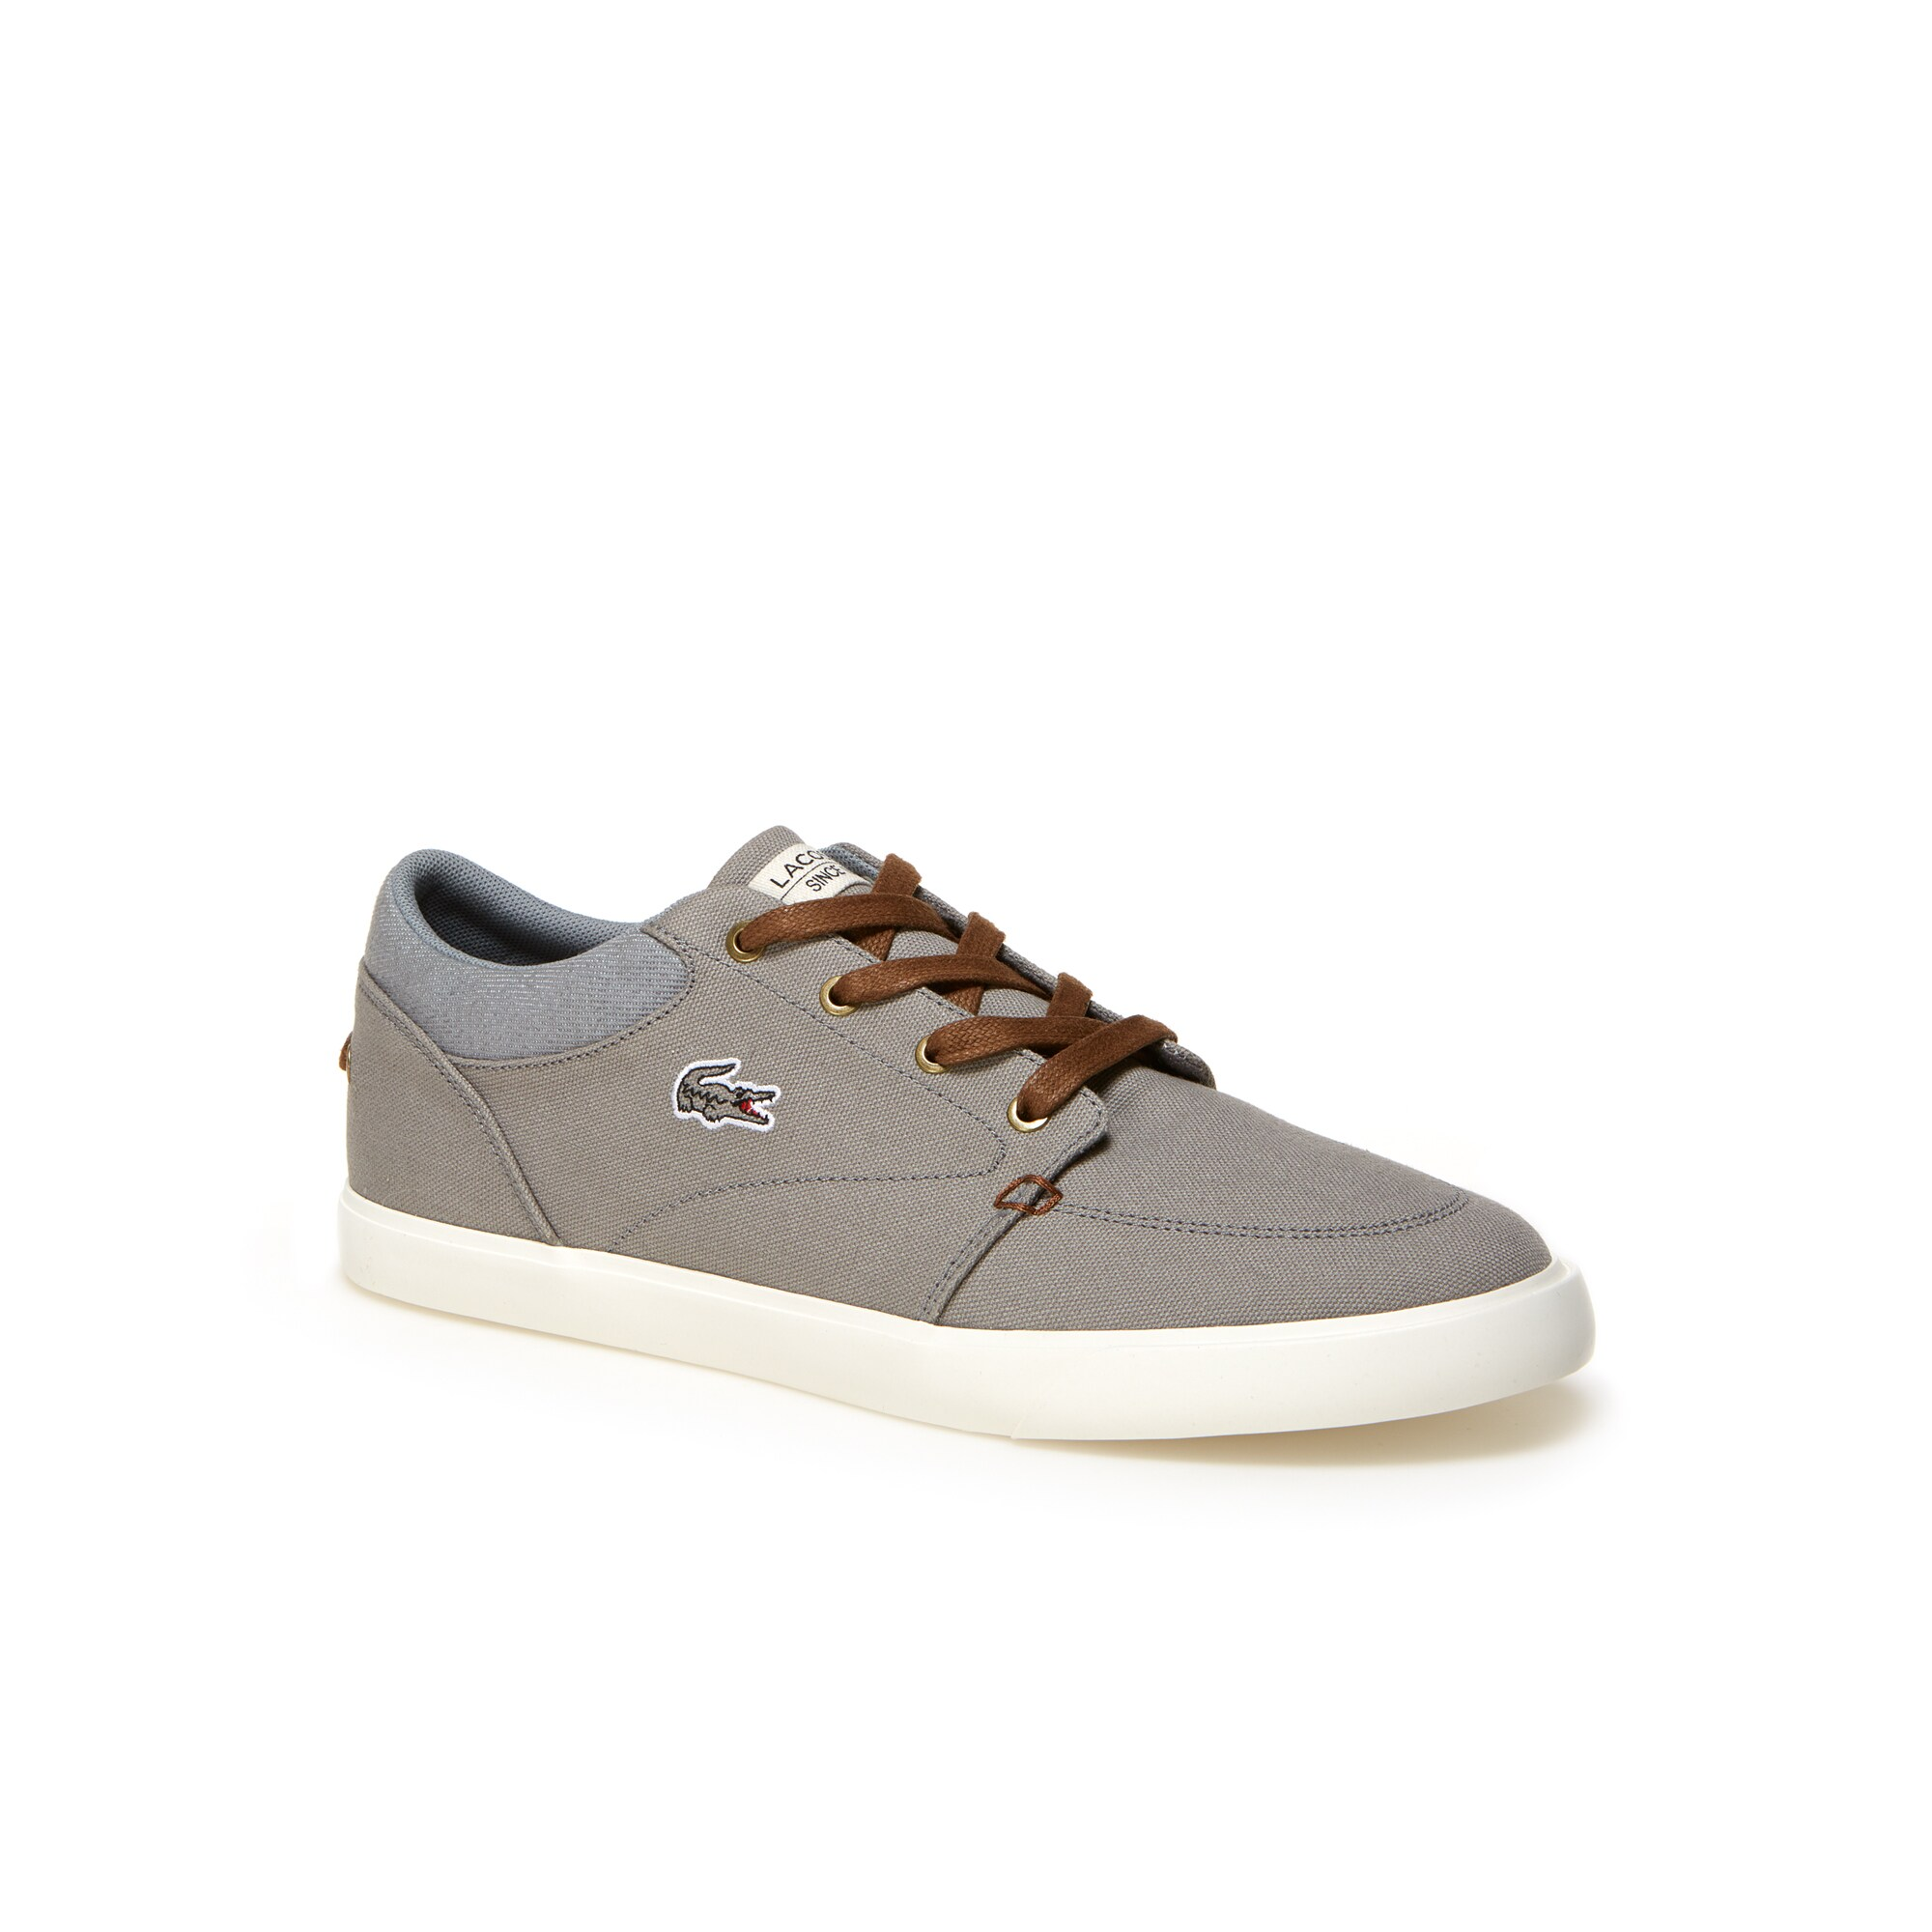 Sneakers Bayliss Vulc in tela